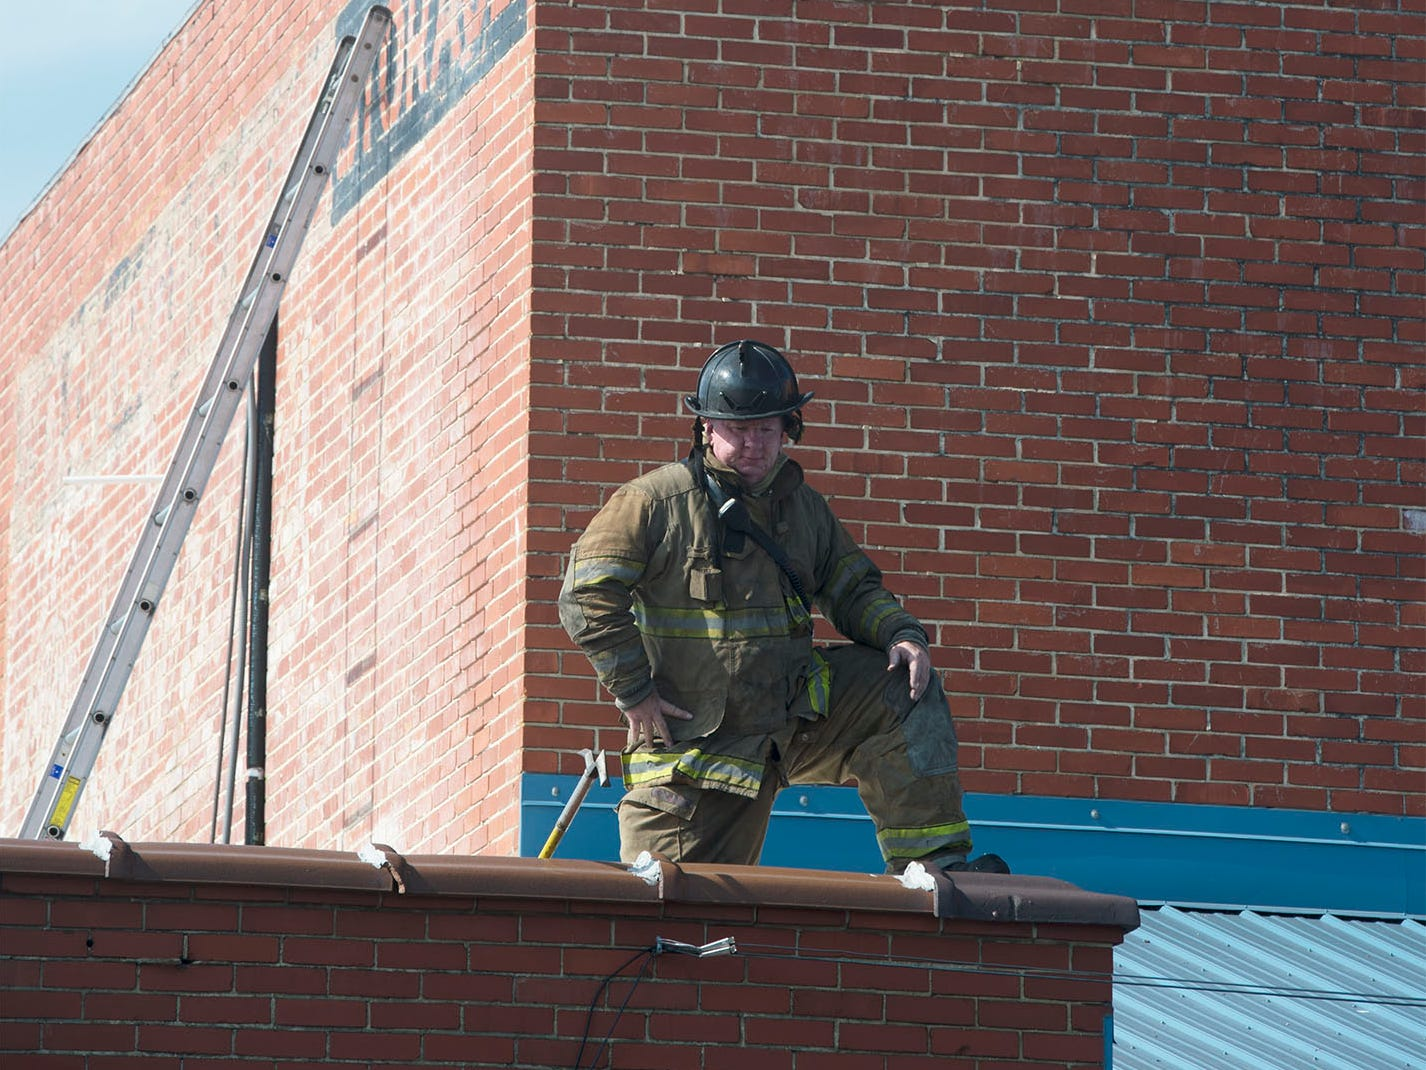 Firefighters are on the roof of Zero Ice. Firefighters are at Zero Ice Corp., 42 Siloam Road, Chambersburg, for a reported fire in the building on Thursday morning, Sept. 6, 2018. The fire was contained to the interior of the building.